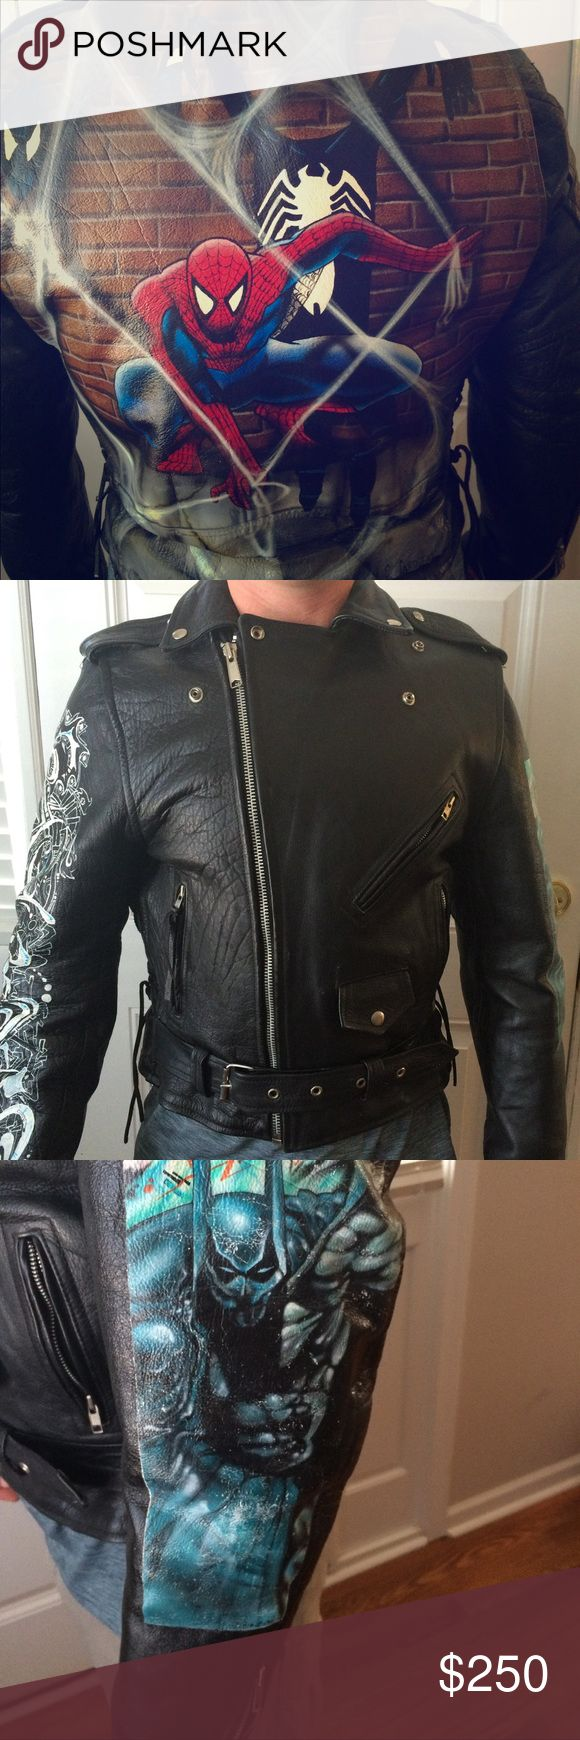 """Unique Handpainted Spiderman Batman Leather Jacket One of a kind, black, 100% leather biker jacket with graffiti style paintings.  The back contains an image of Spiderman, one arm an image of Batman, and the other arm is tagged with the word """"Paris"""". Probably a size medium, unfortunately no label with the size. . No record of the history, at least 15 years old, purchased in Europe, like new.  Features two inside pockets, lining, snap button collar, four front pockets, lace-up sides, and a…"""